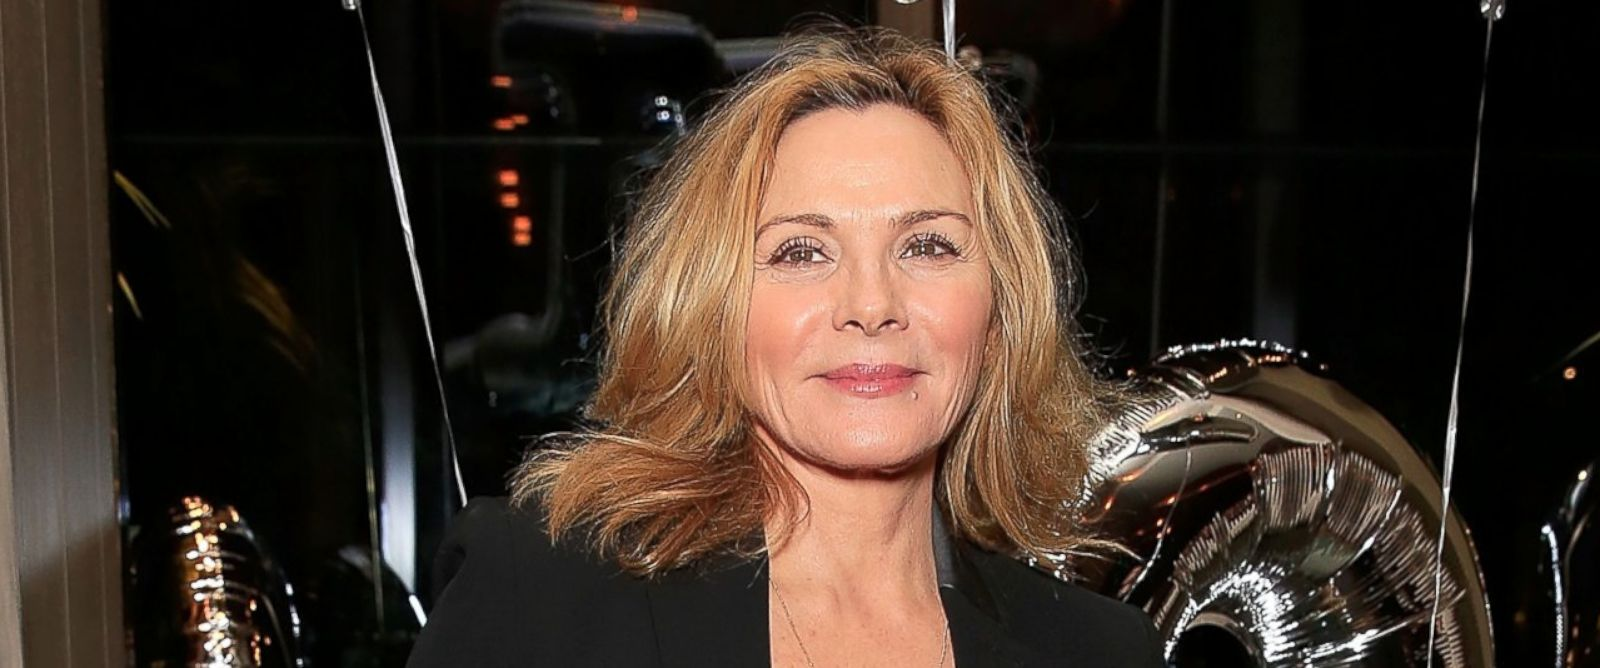 PHOTO: Actress Kim Cattrall at a party for Spectator Life magazine at the Belgraves Hotel in London on Mar. 31, 2015.